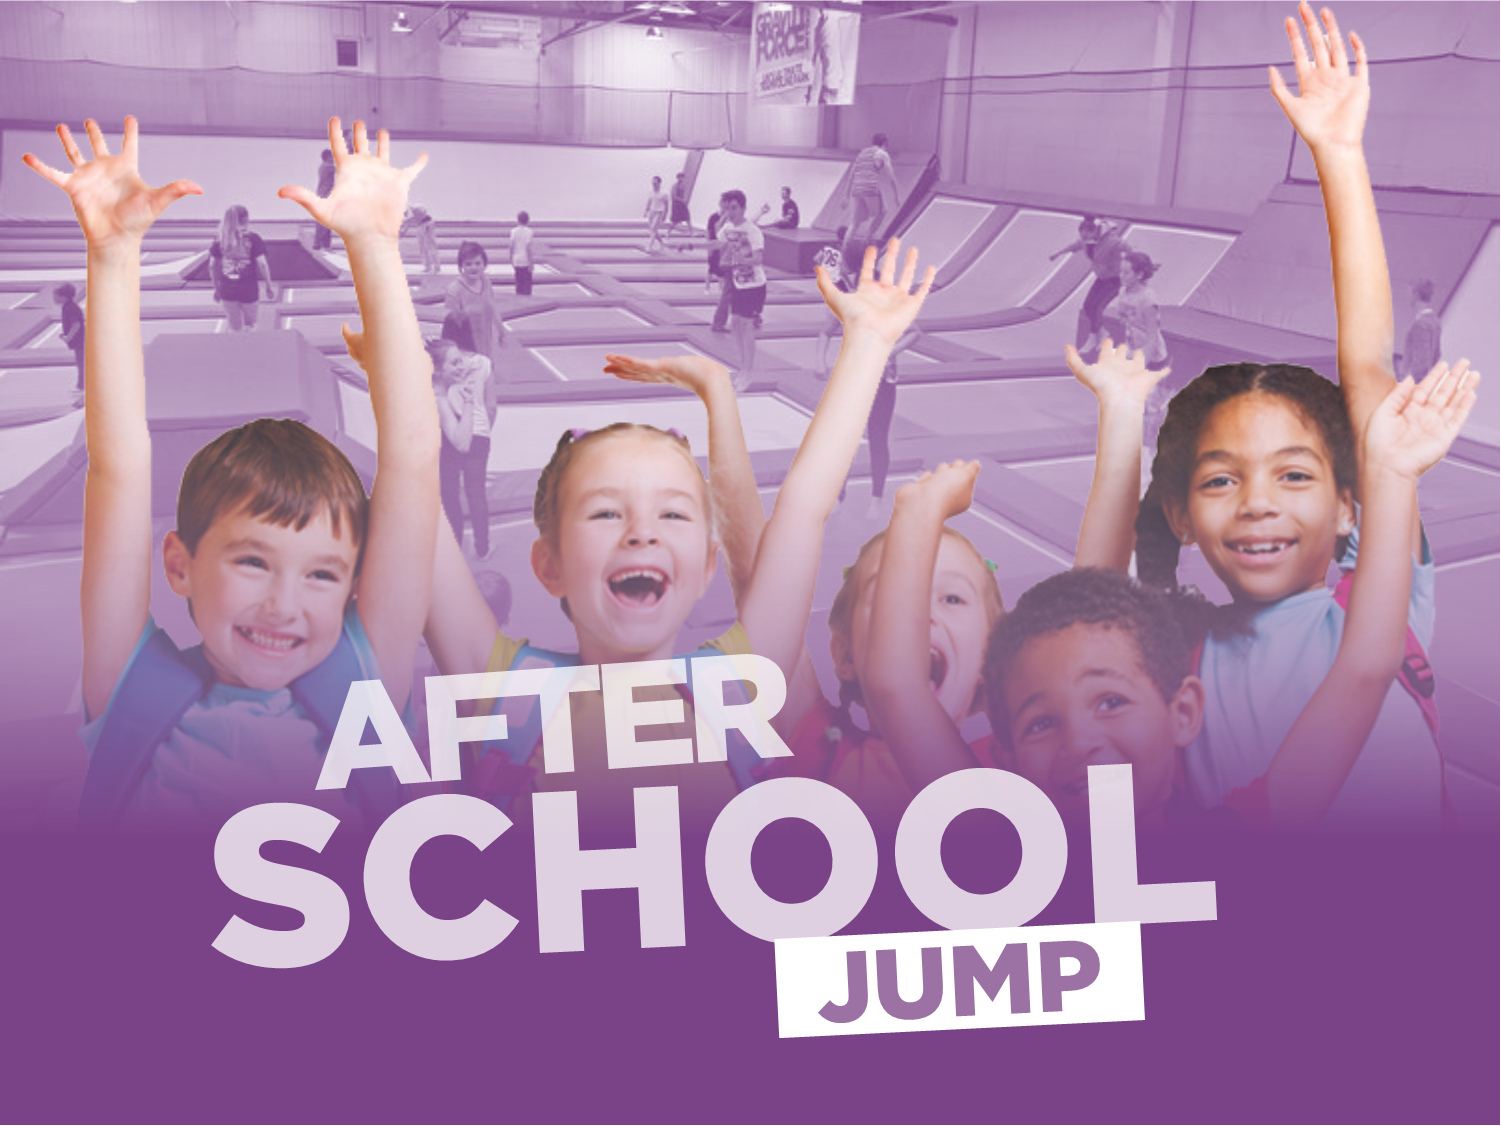 The perfect end to every school day. - After school jump and meal deal.Starting week commencing 8th May we are launching our after school Jump and meal deal.The deal is Available across during the 4pm to 5pm session Monday to Thursday.Priced at just £10, the deal includes one hour jump followed by a hot dog and your choice of a slushi or bottled water.The offer is available term time only and all bookings during the session will be entitled to the meal deal.To find out more please contact your local park.Annual Pass holders can attend this session free as per the annual pass terms and conditions but this excludes the meal deal. This can be added on at point of sale for £2.50. To book your after school jump session click below.For full terms click here.